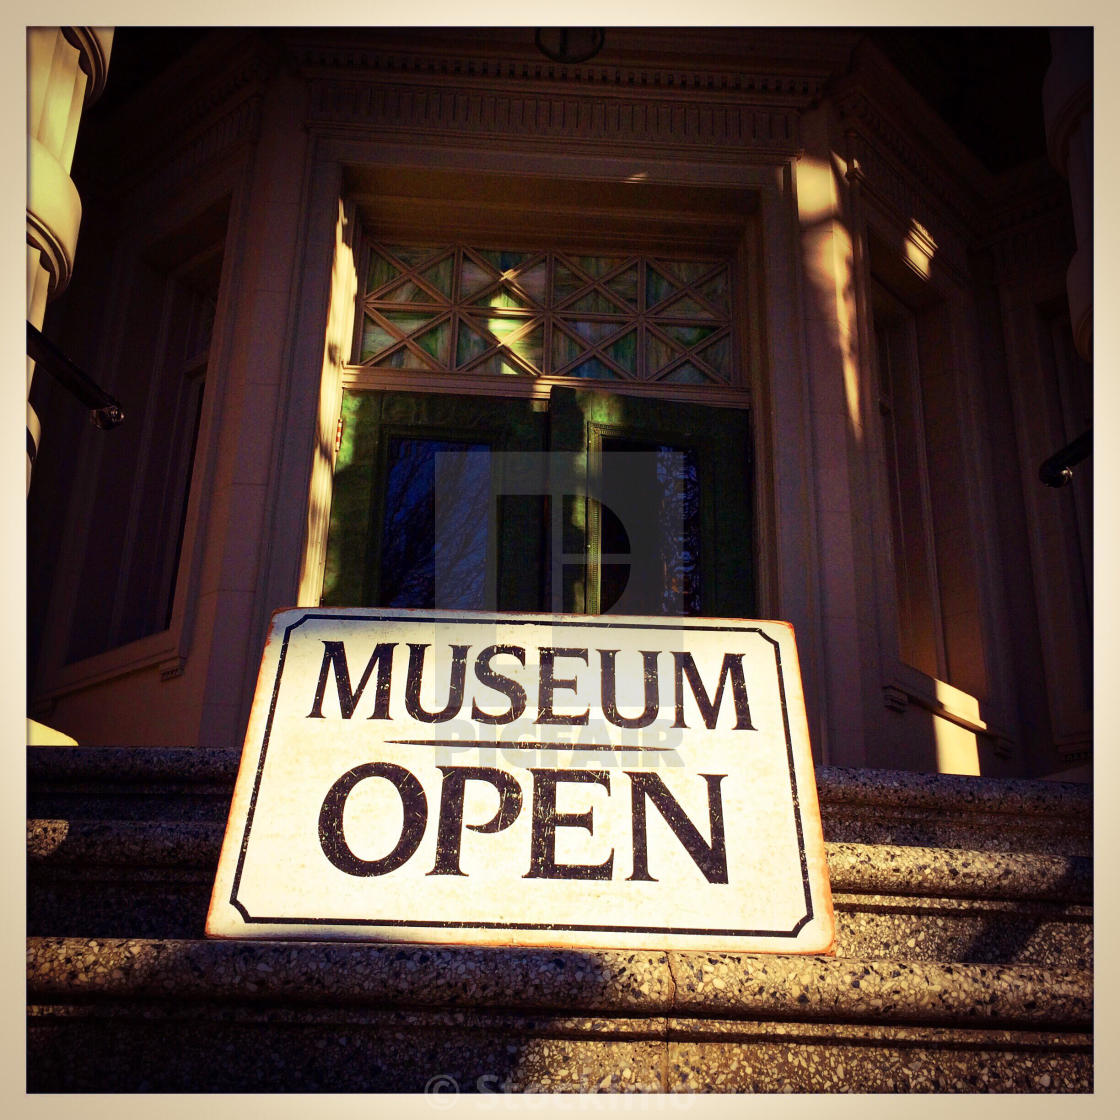 Museum Open sign at McHenry Museum  Modesto, California, USA